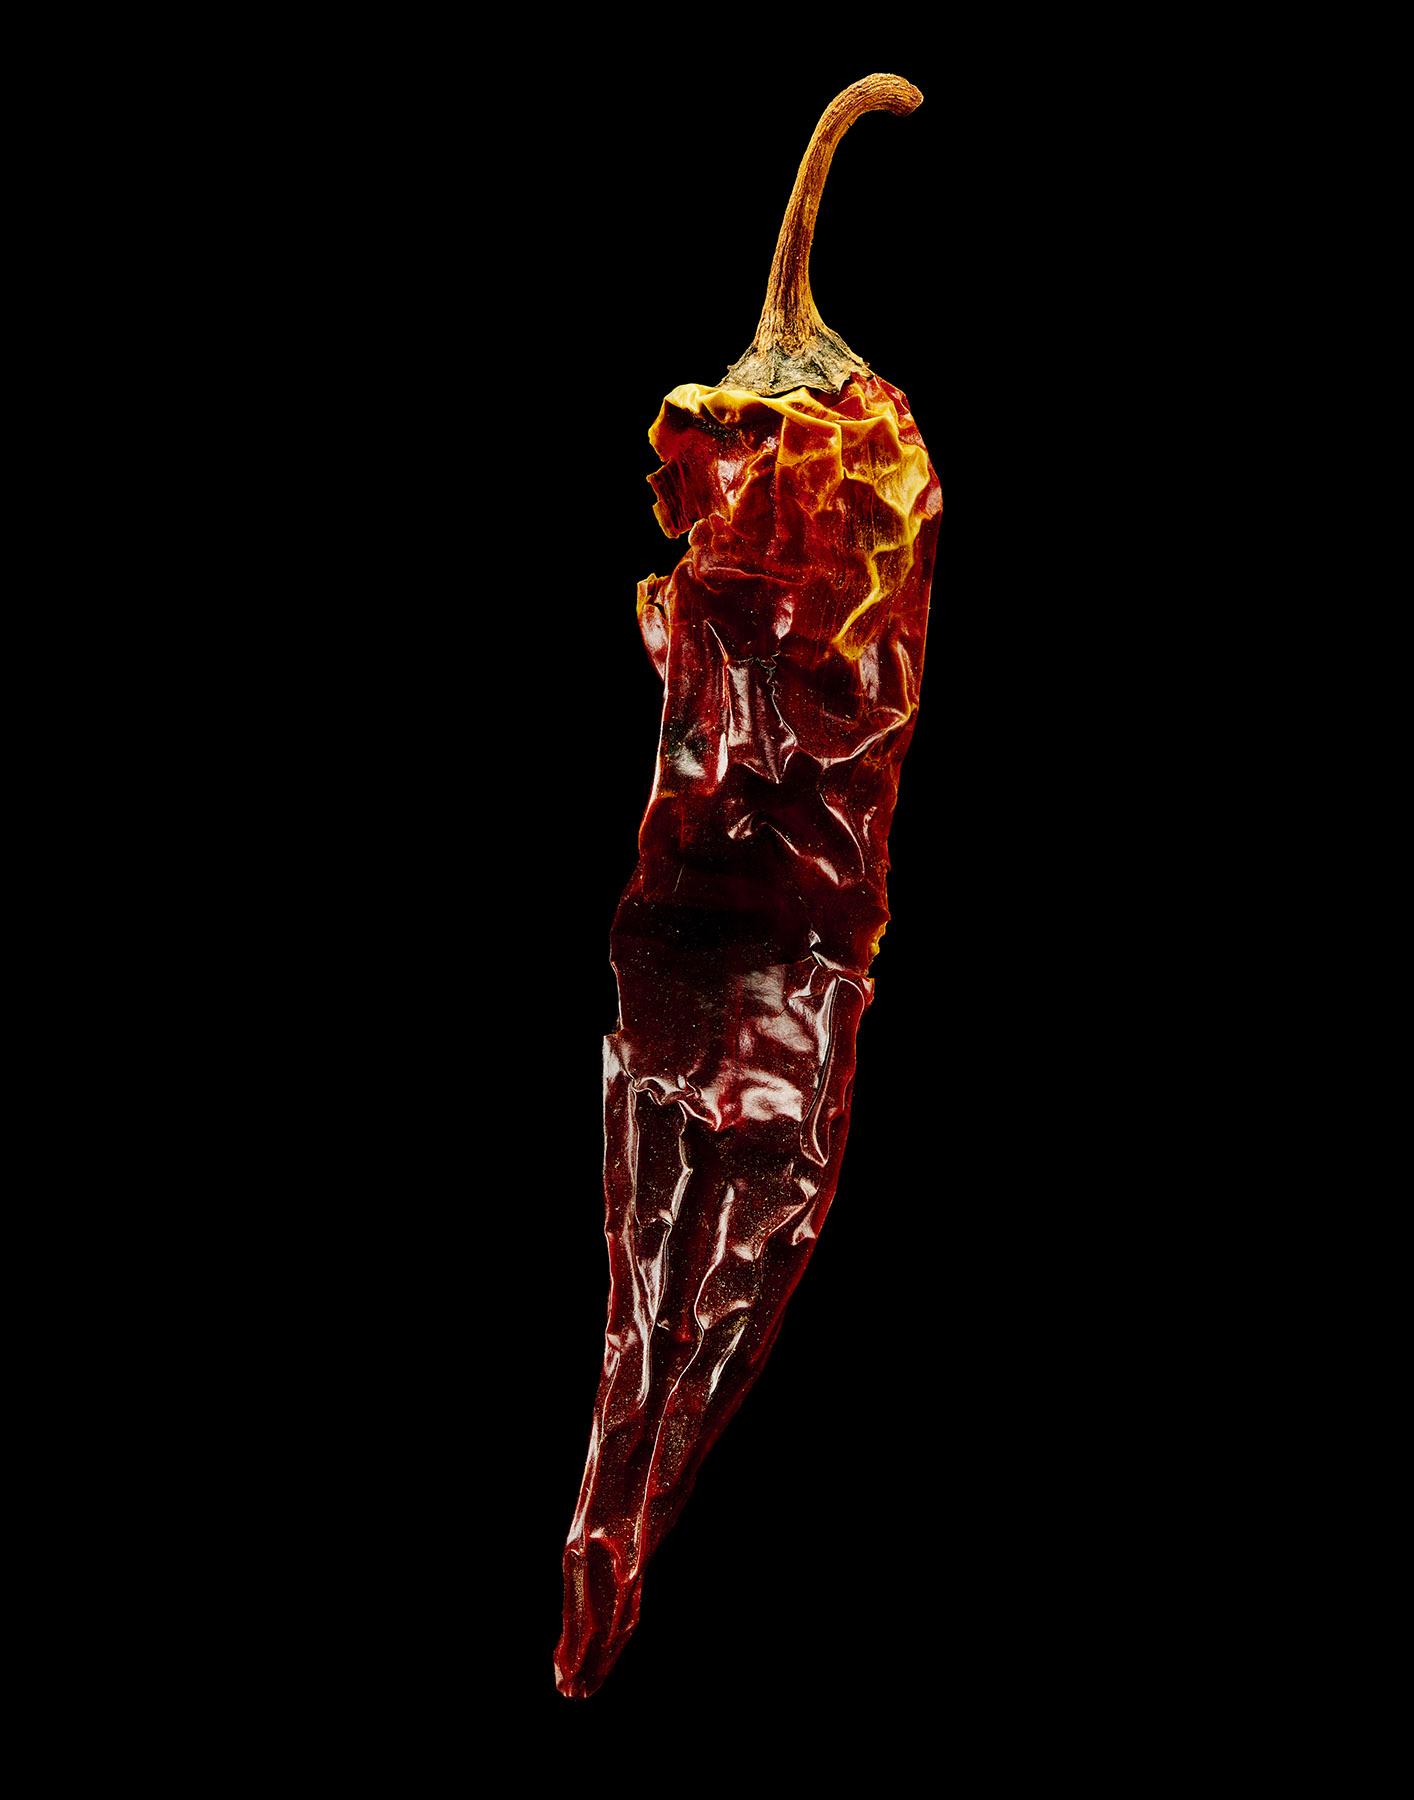 170221-Dried-Peppers-689